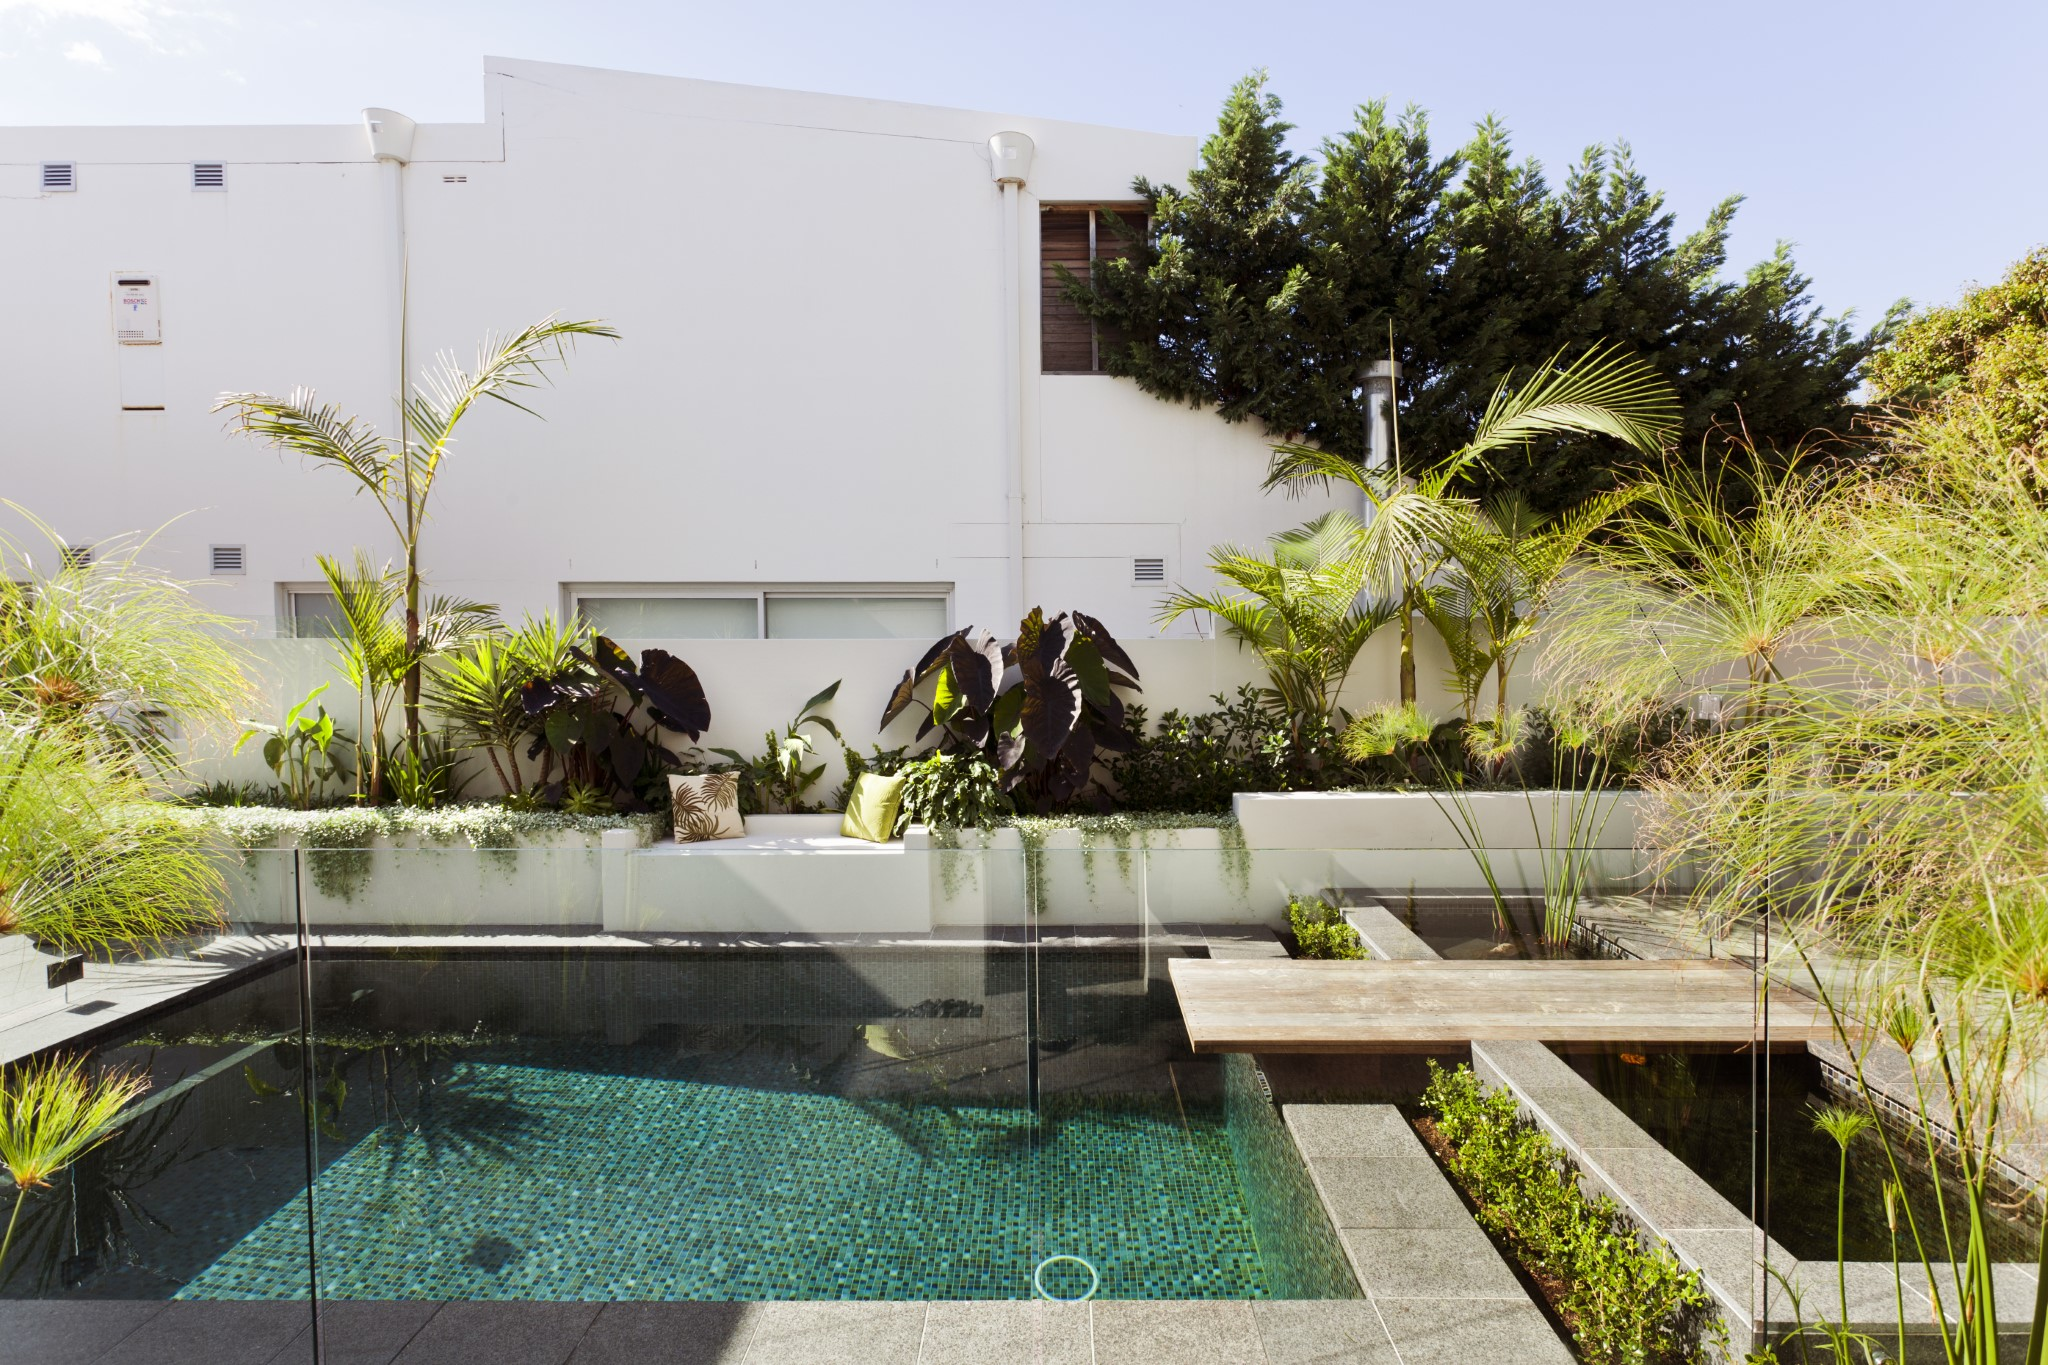 Classic design swimming pool with modern outlook surrounded by plants